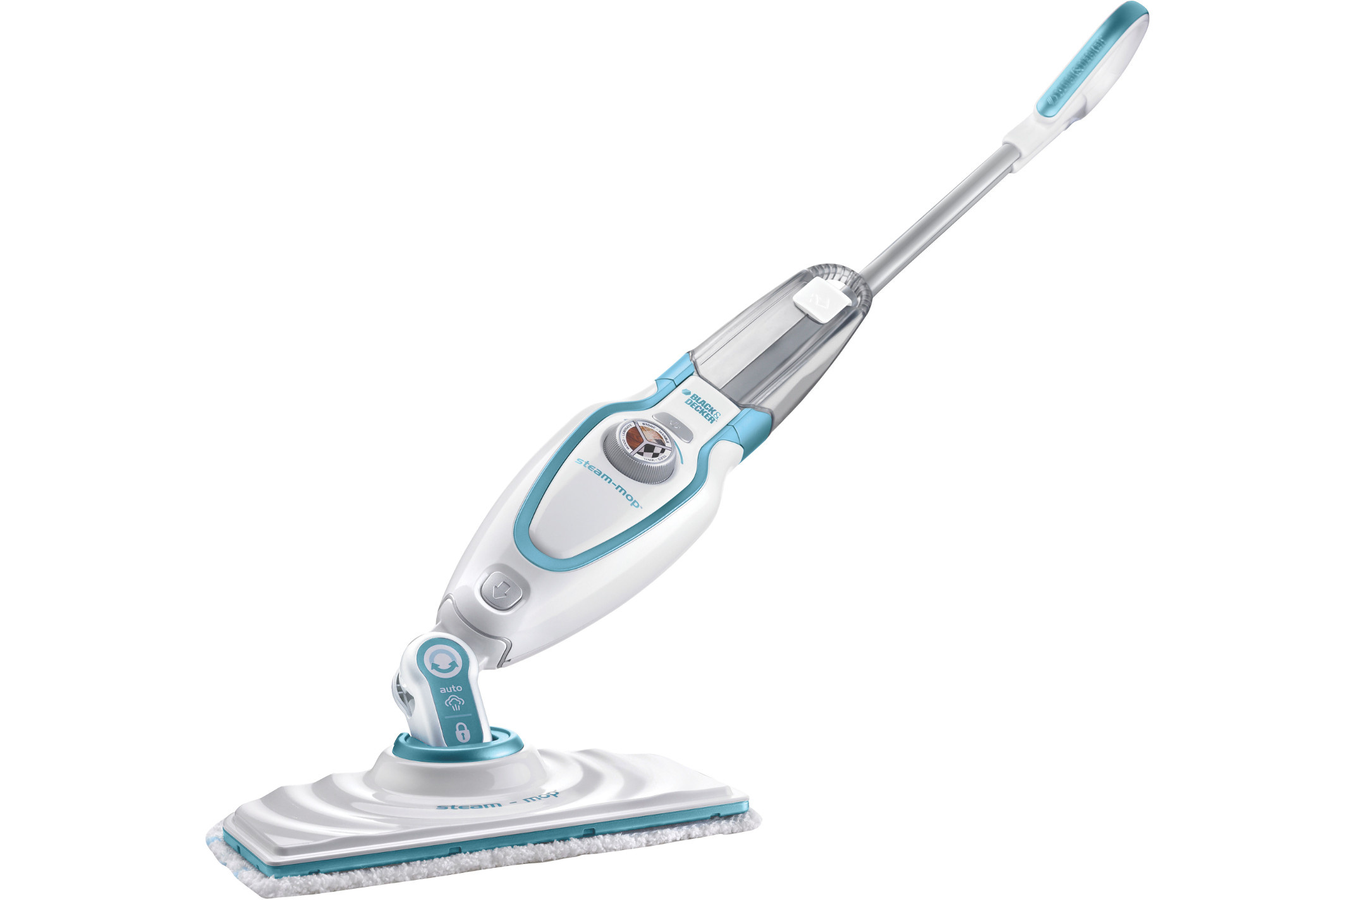 Nettoyeur vapeur black decker fsm1610 steam mop steammop 3721353 darty - Aspirateur balai black et decker ...